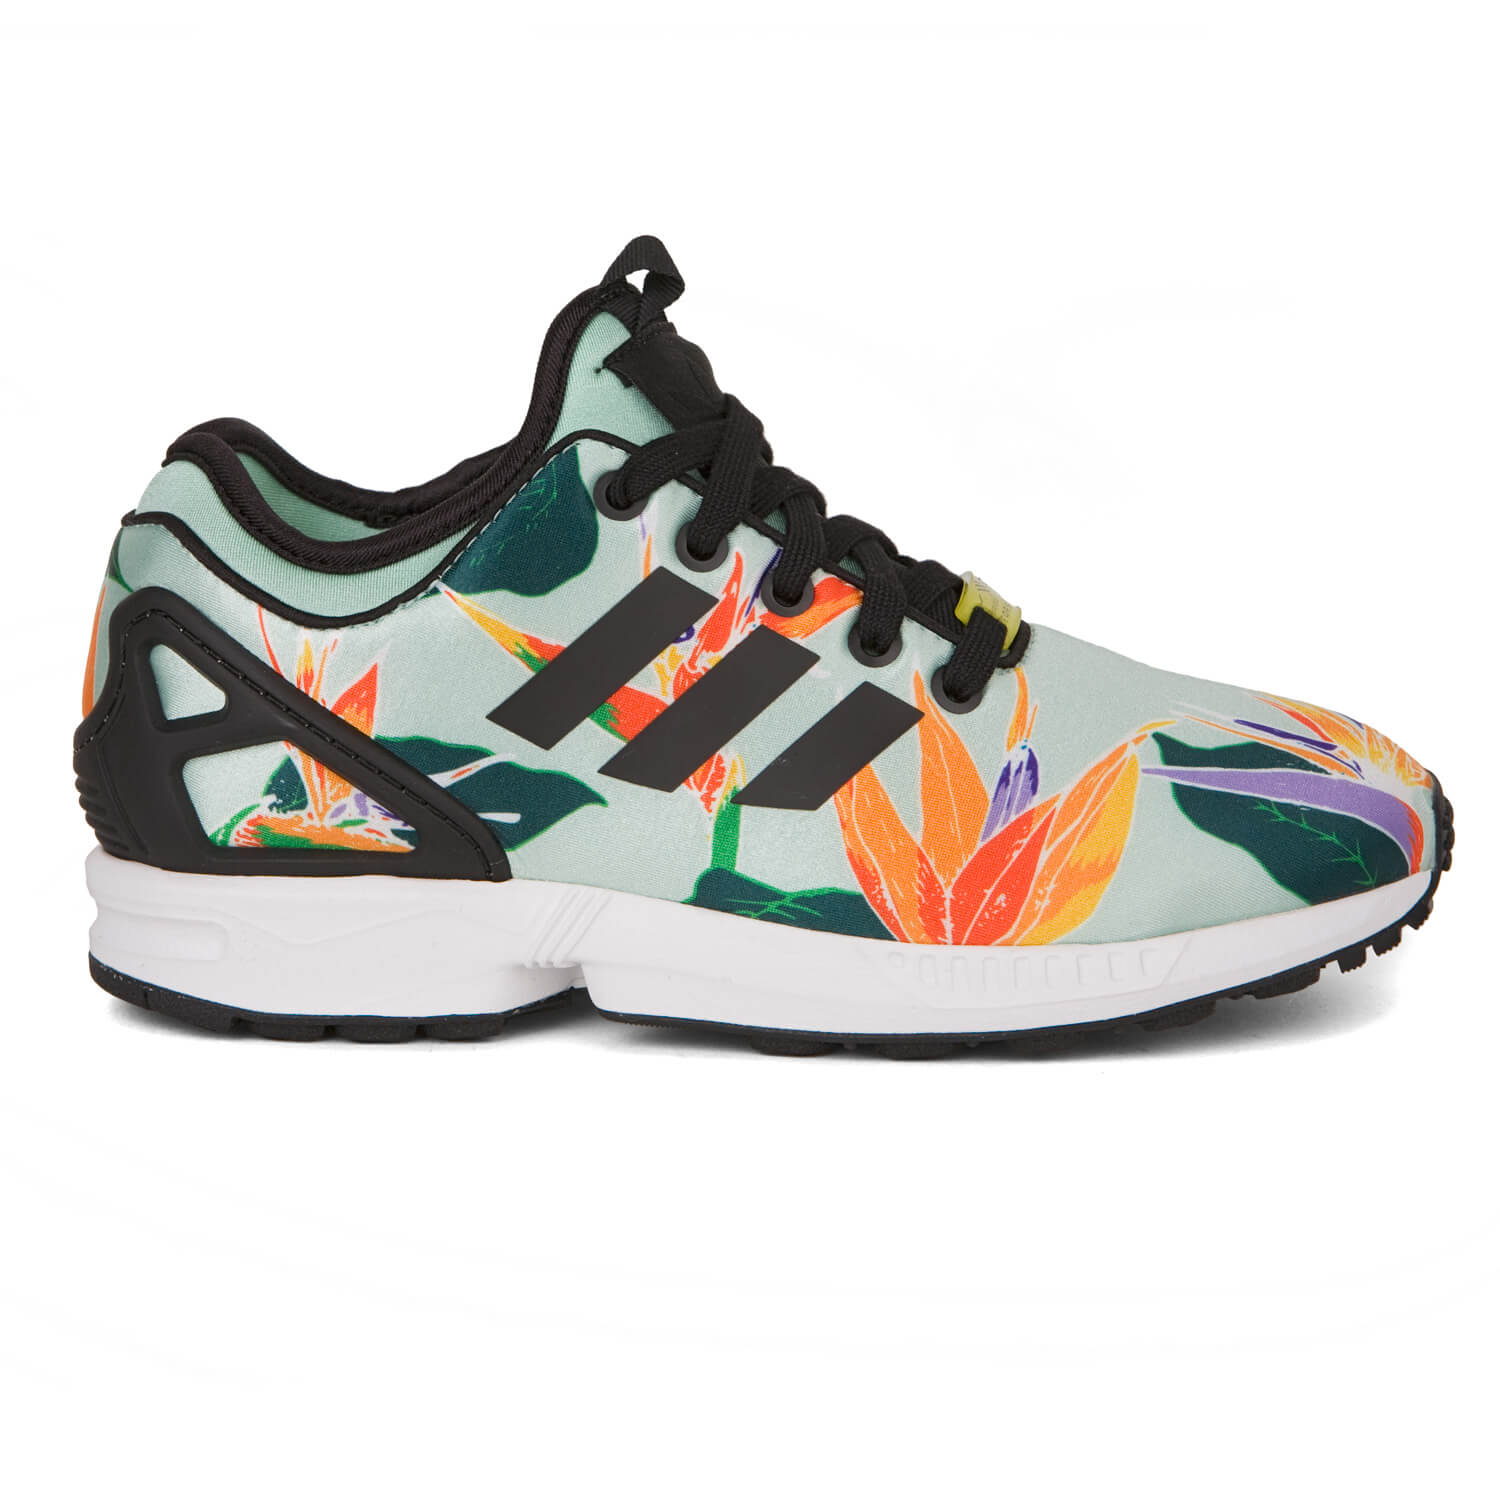 adidas zx flux nps damen schuhe blue green blumen ebay. Black Bedroom Furniture Sets. Home Design Ideas